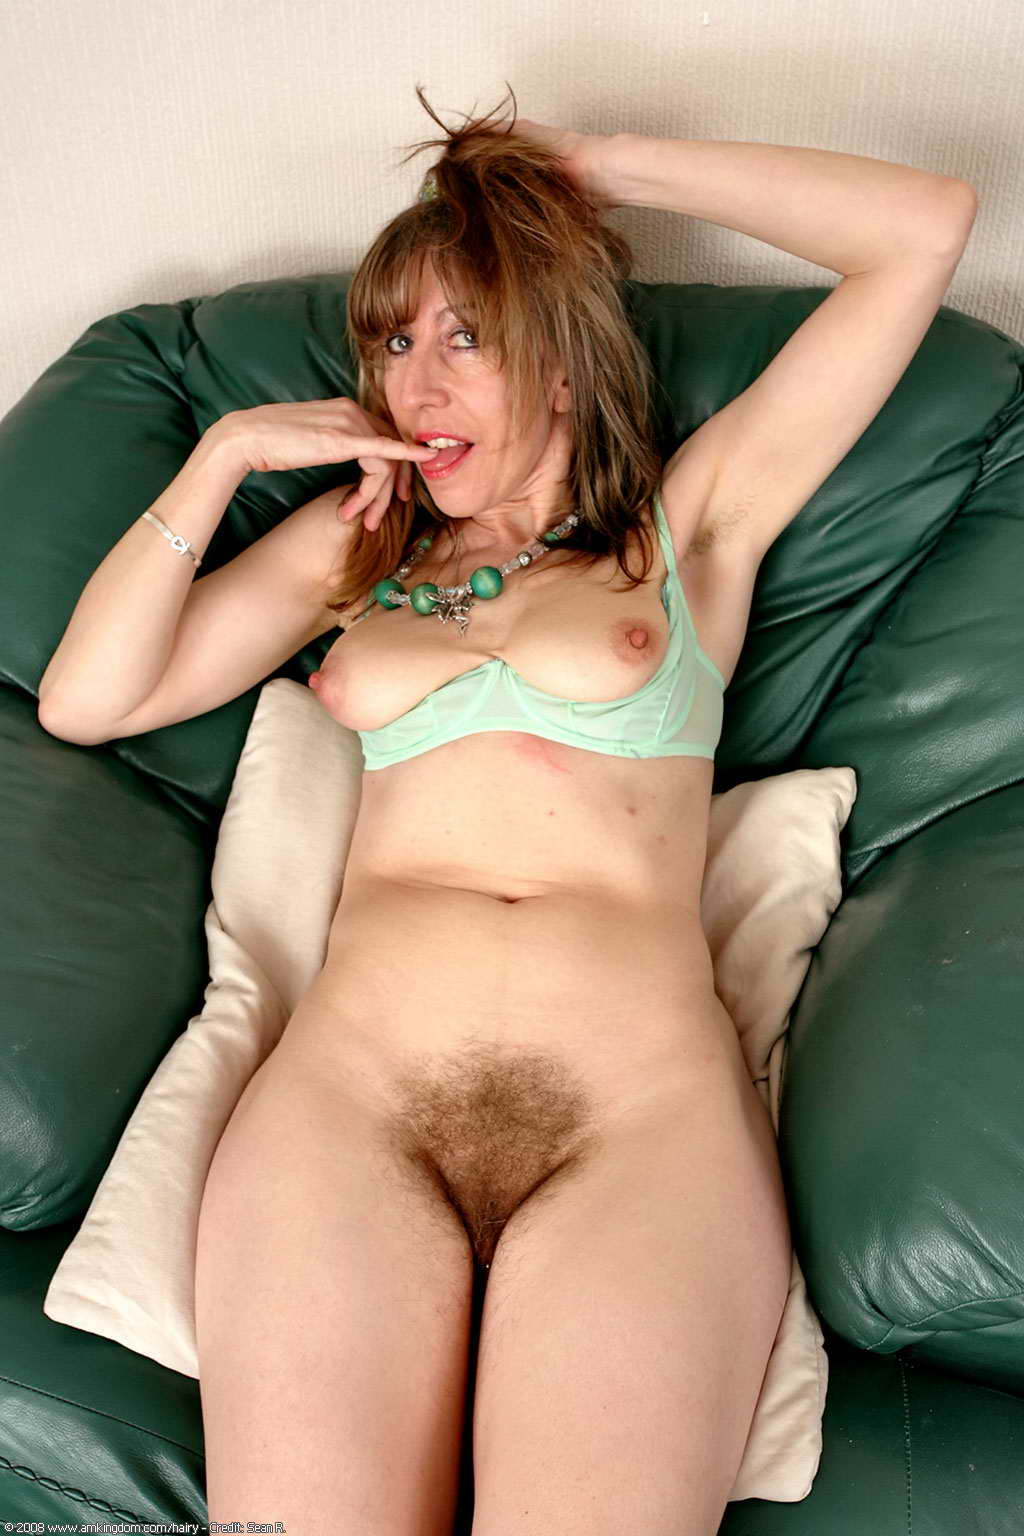 Over 50s nude